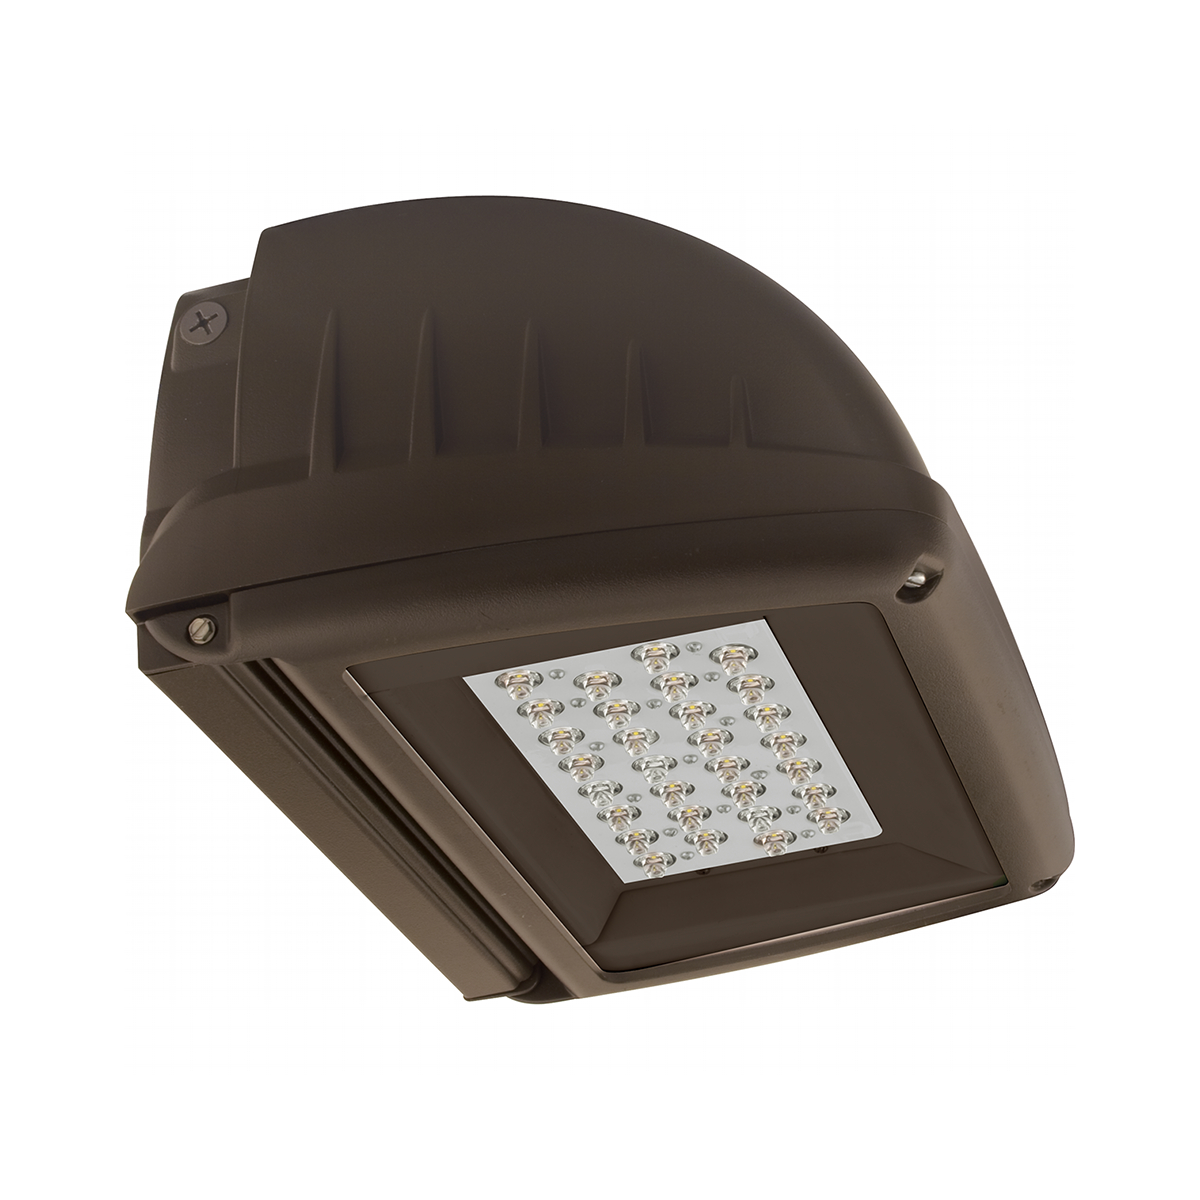 Wall mount commercial outdoor lighting lighting controls laredo lmc laredo lmc by hubbell outdoor lighting full cutoff architectural wallpack aloadofball Choice Image